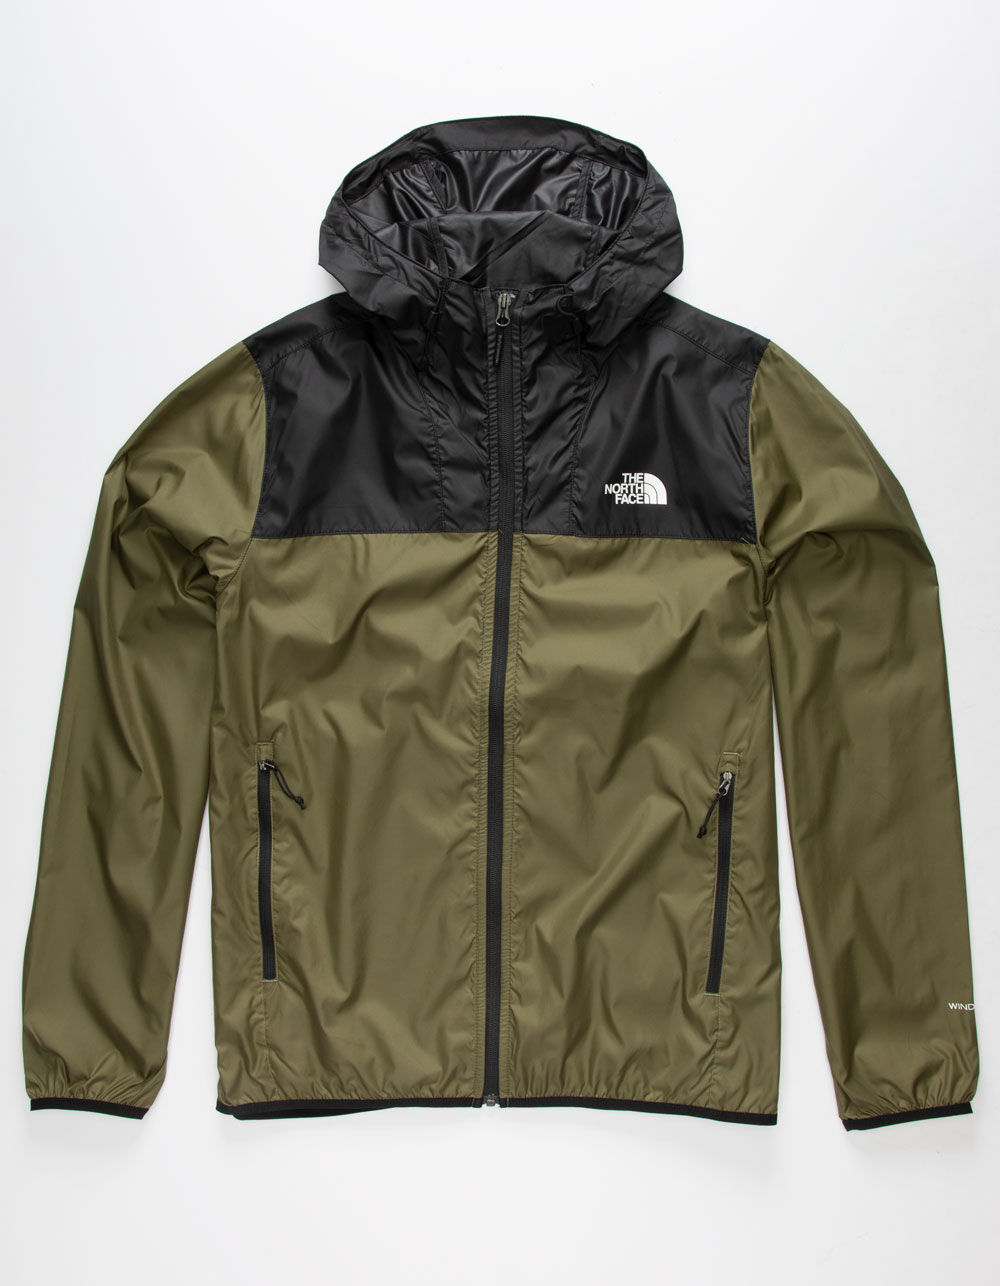 THE NORTH FACE Cyclone 2 Olive Windbreaker Jacket